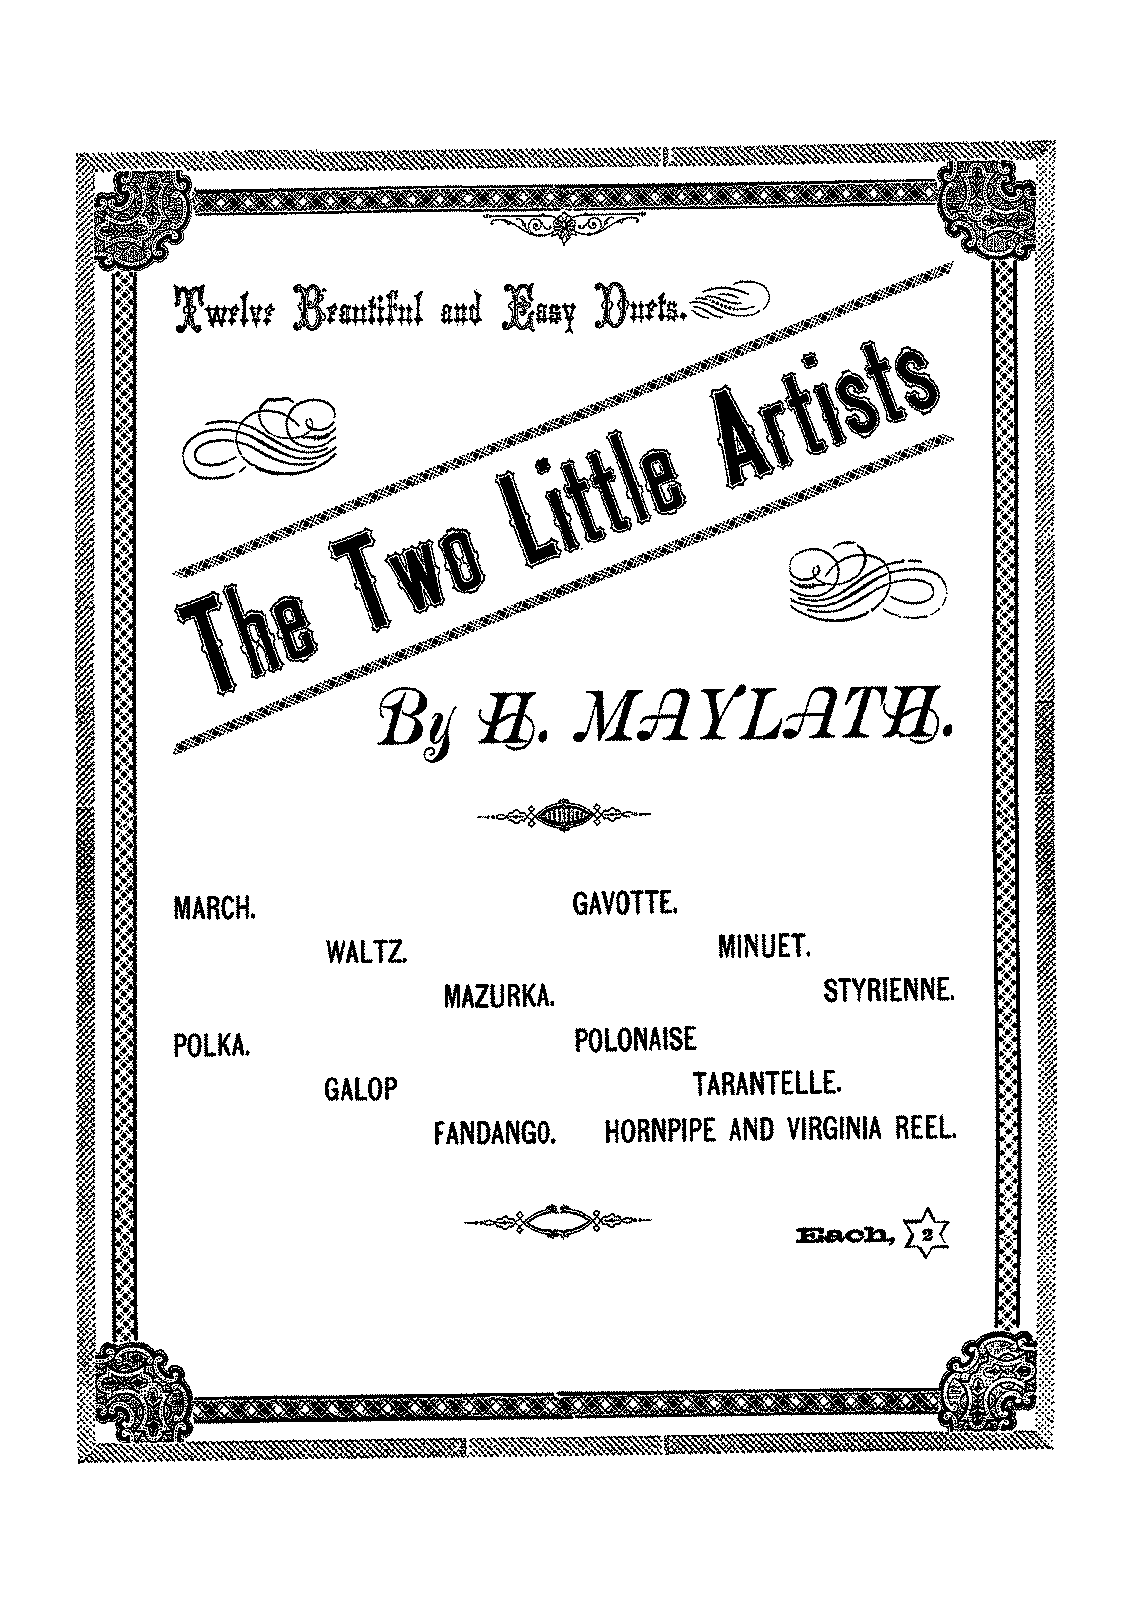 PMLP616662-Maylath - The Two Little Artists - 12 Easy Duets - 4H.pdf